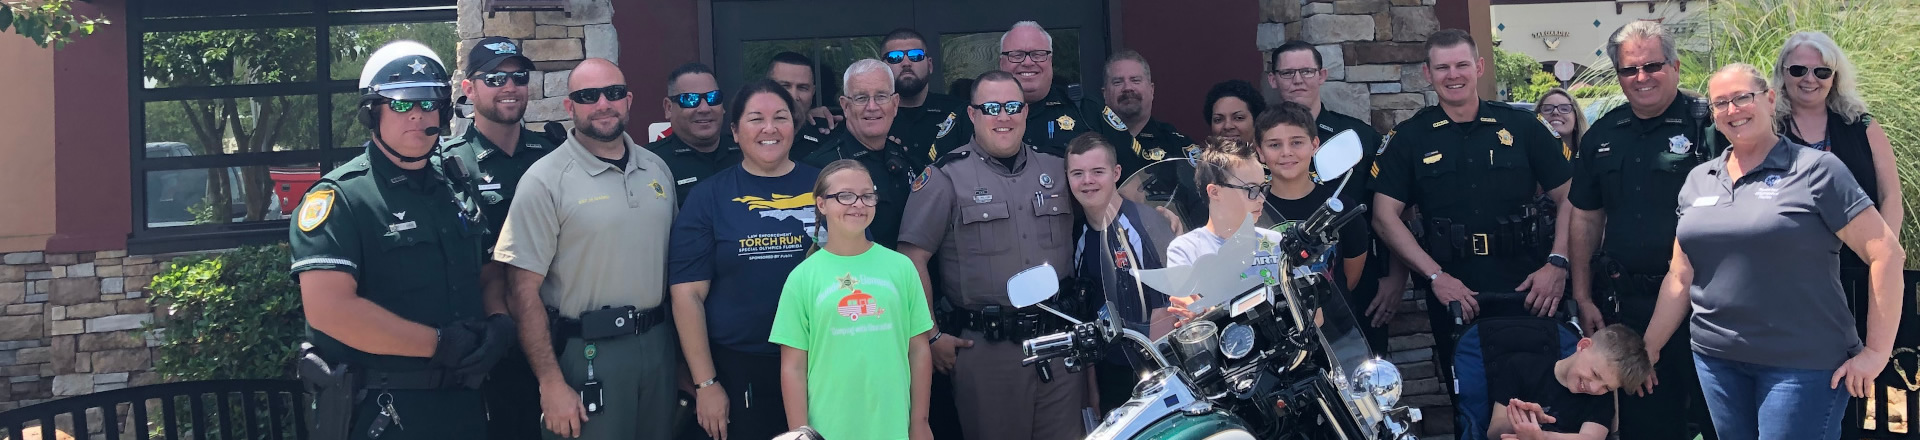 children special needs posing with Sheriffs